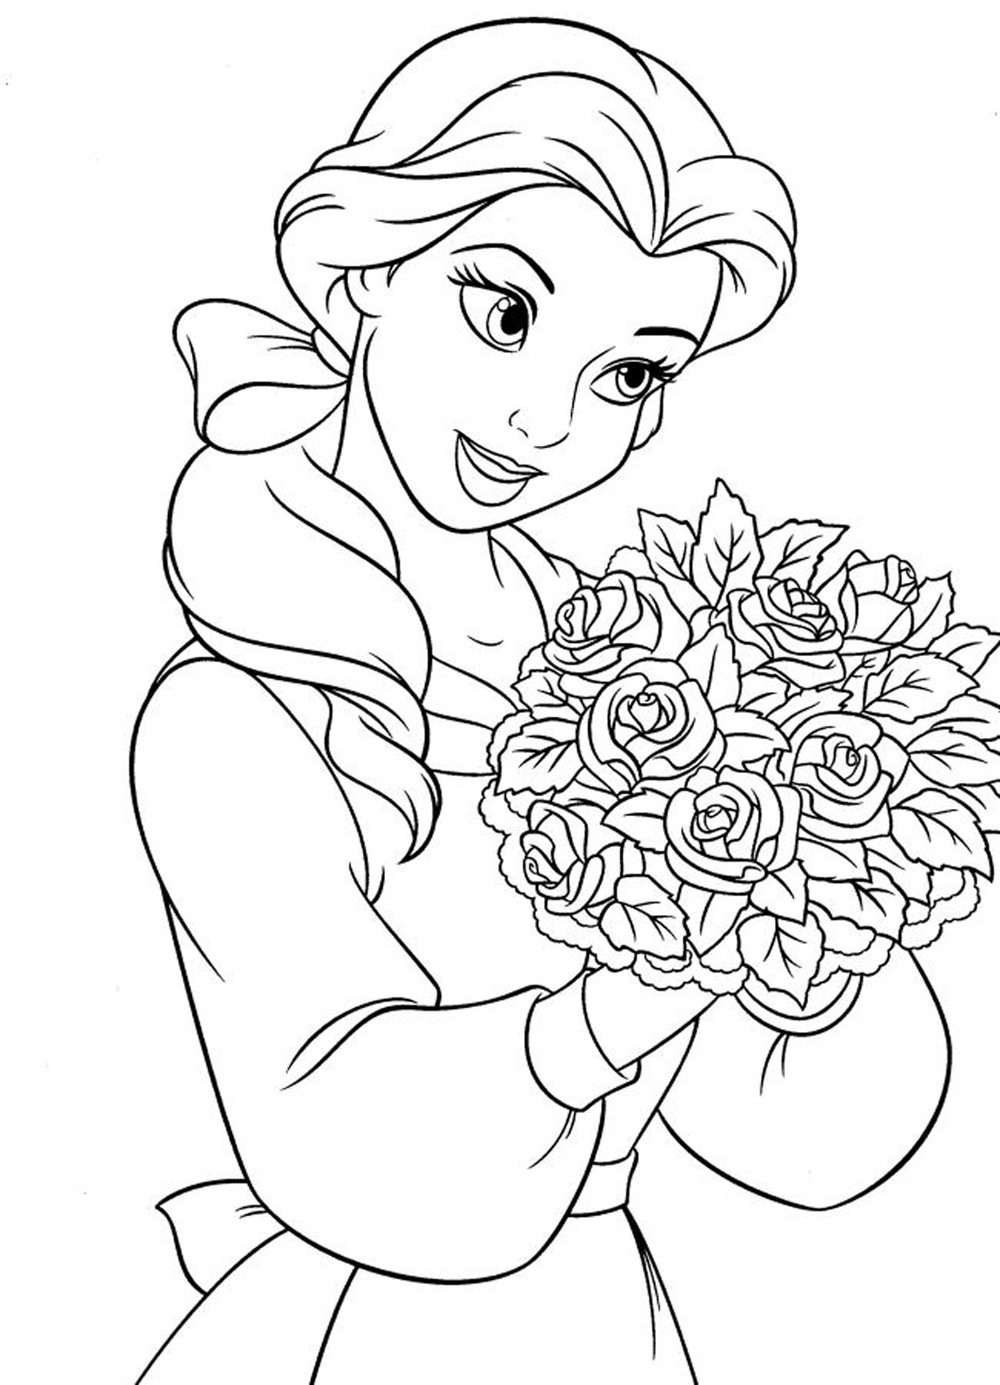 kids free coloring pages disney - photo#13